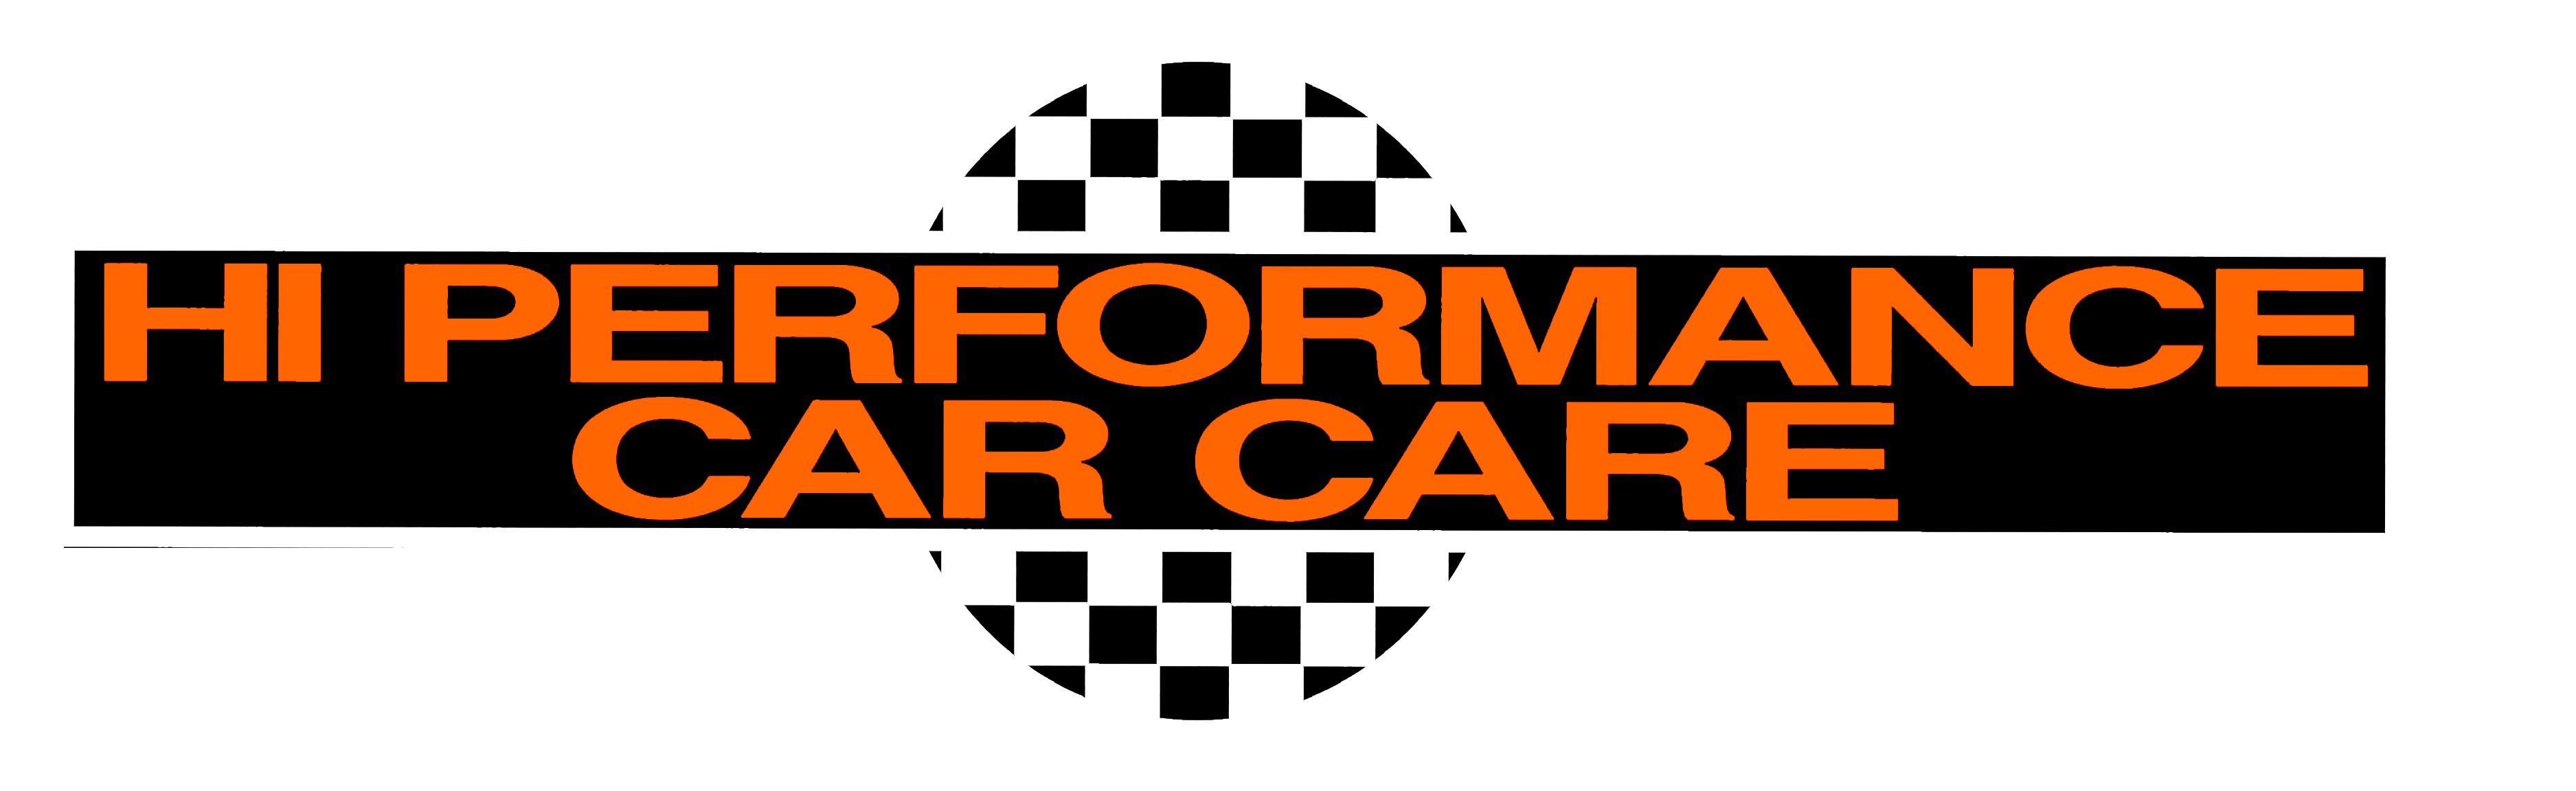 Hi Performance Car Care